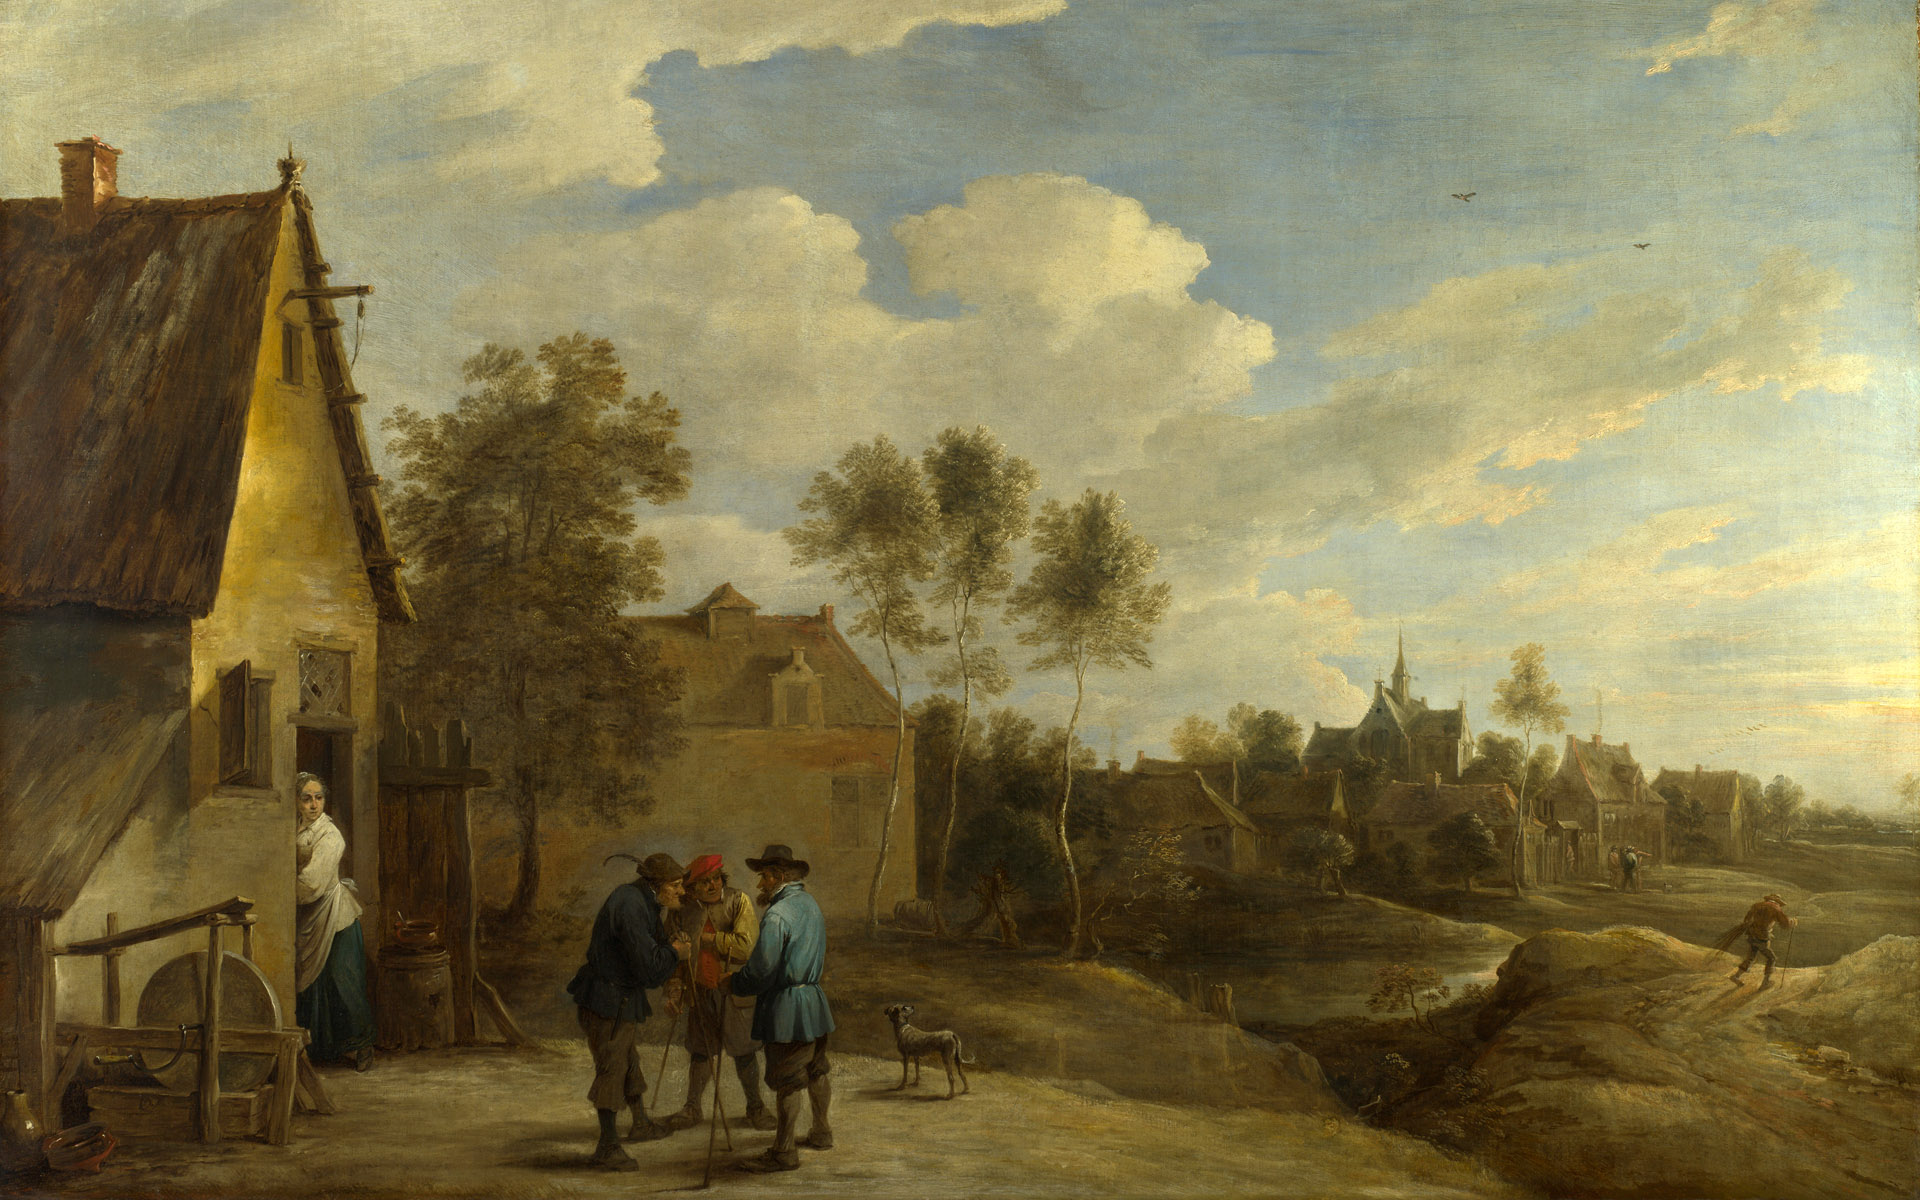 Full Title: A View Of A Village Artist: David Teniers The Younger Date Made